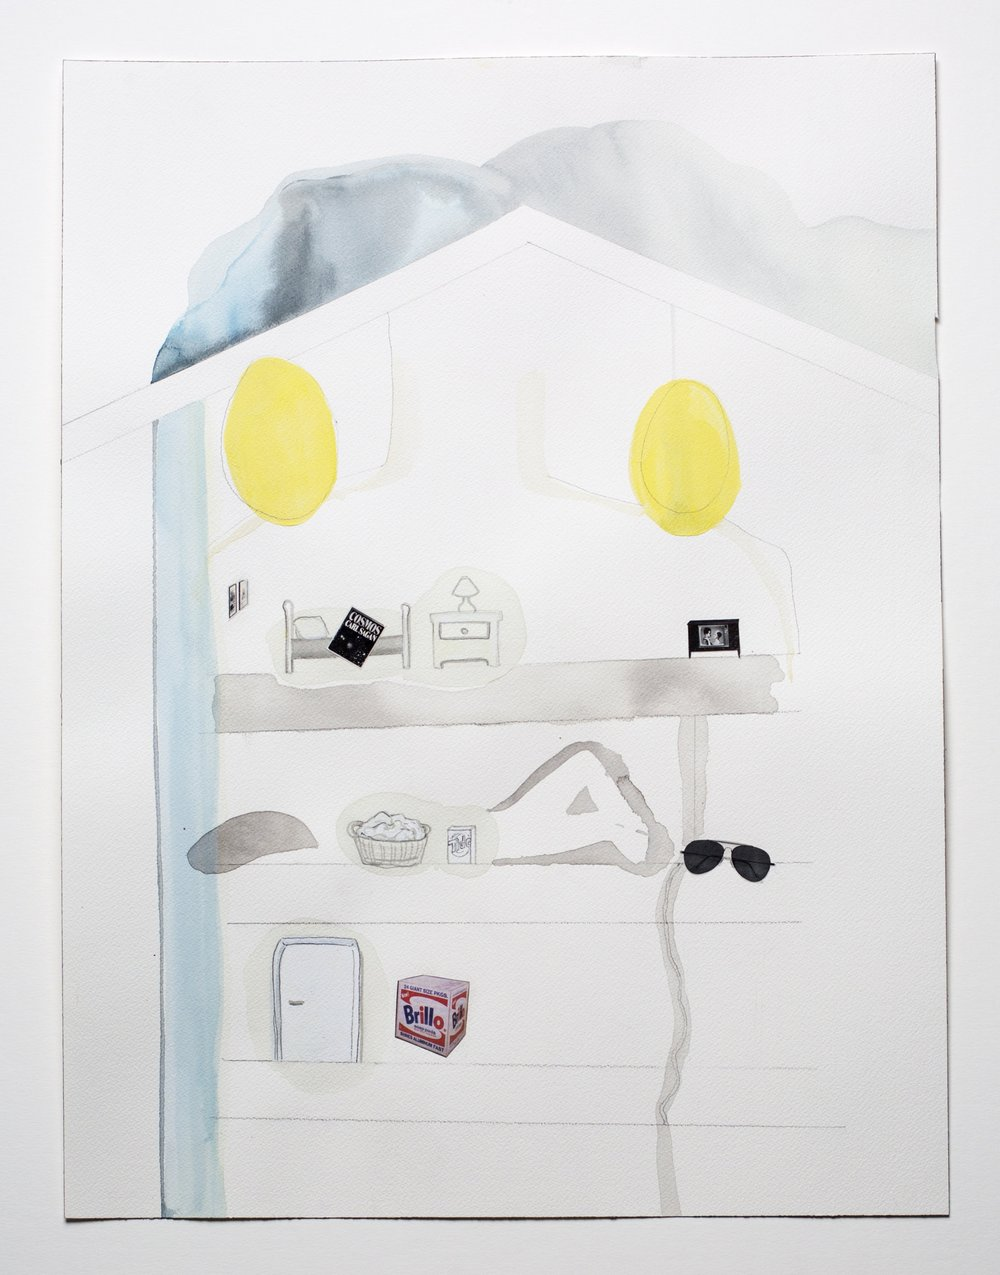 egg house , 2015, ink, gouache, and collage on paper, 18 x 24 inches